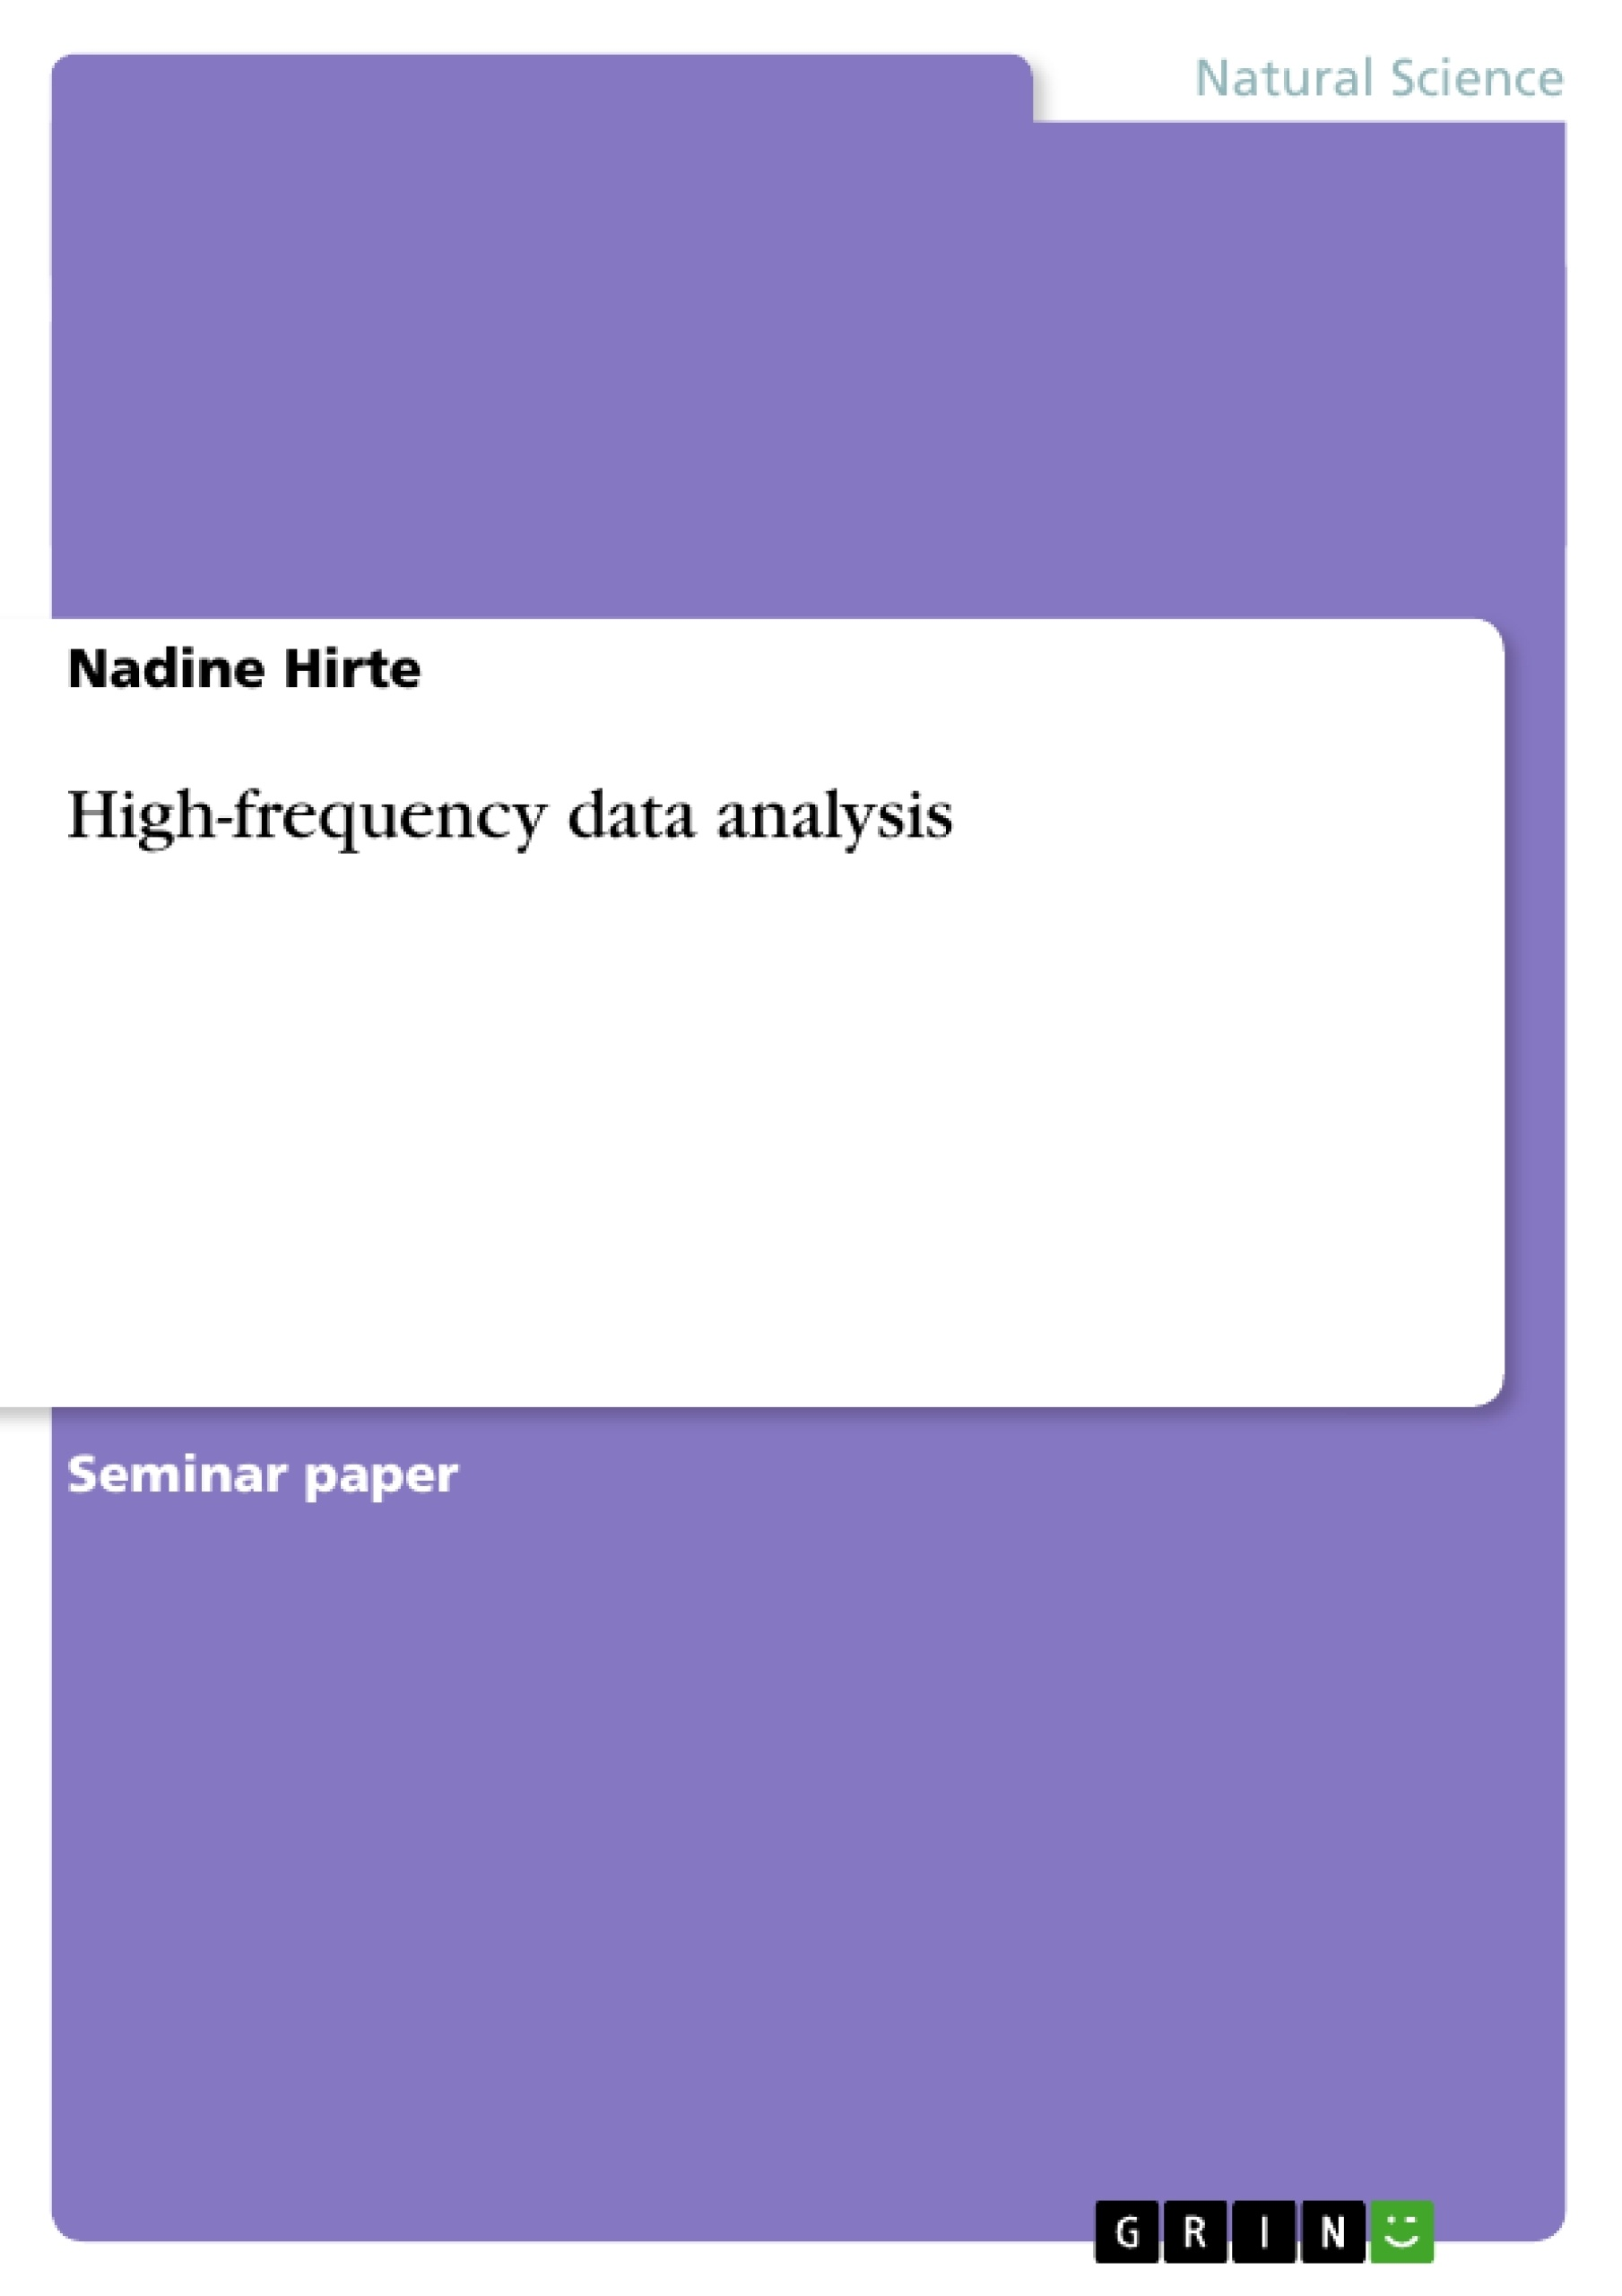 Title: High-frequency data analysis